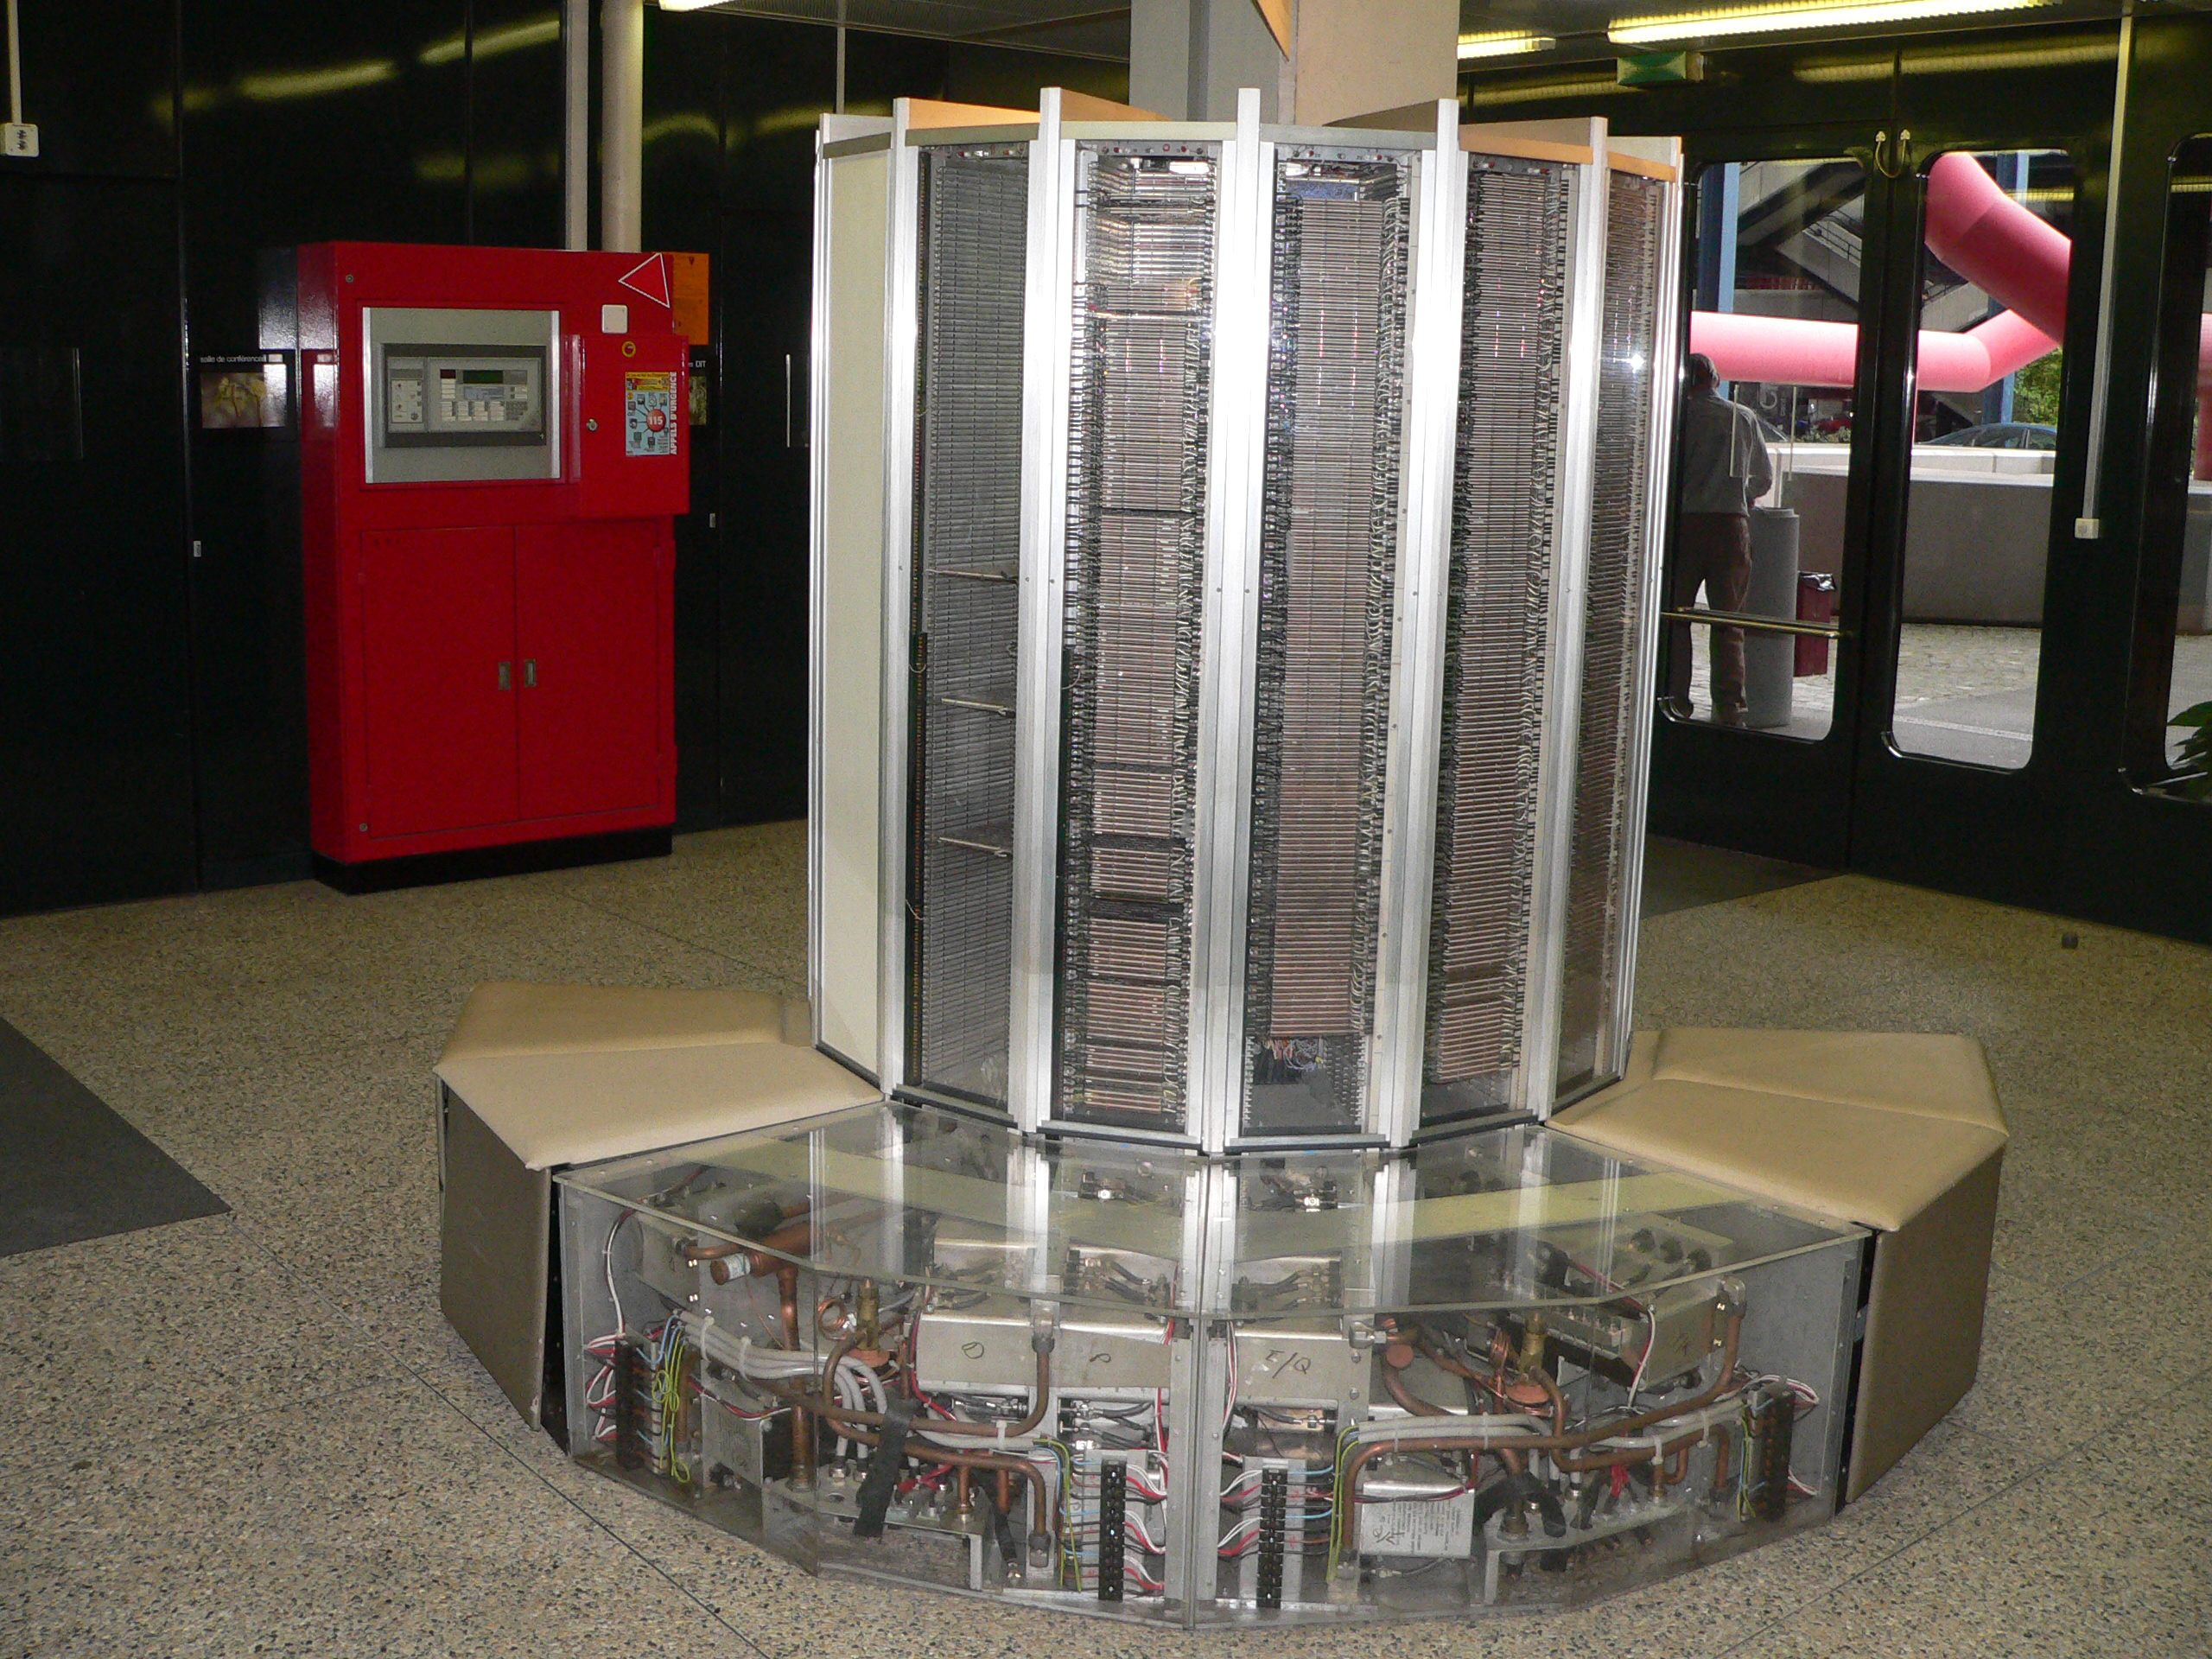 http://upload.wikimedia.org/wikipedia/commons/e/e4/Cray-1-p1010221.jpg